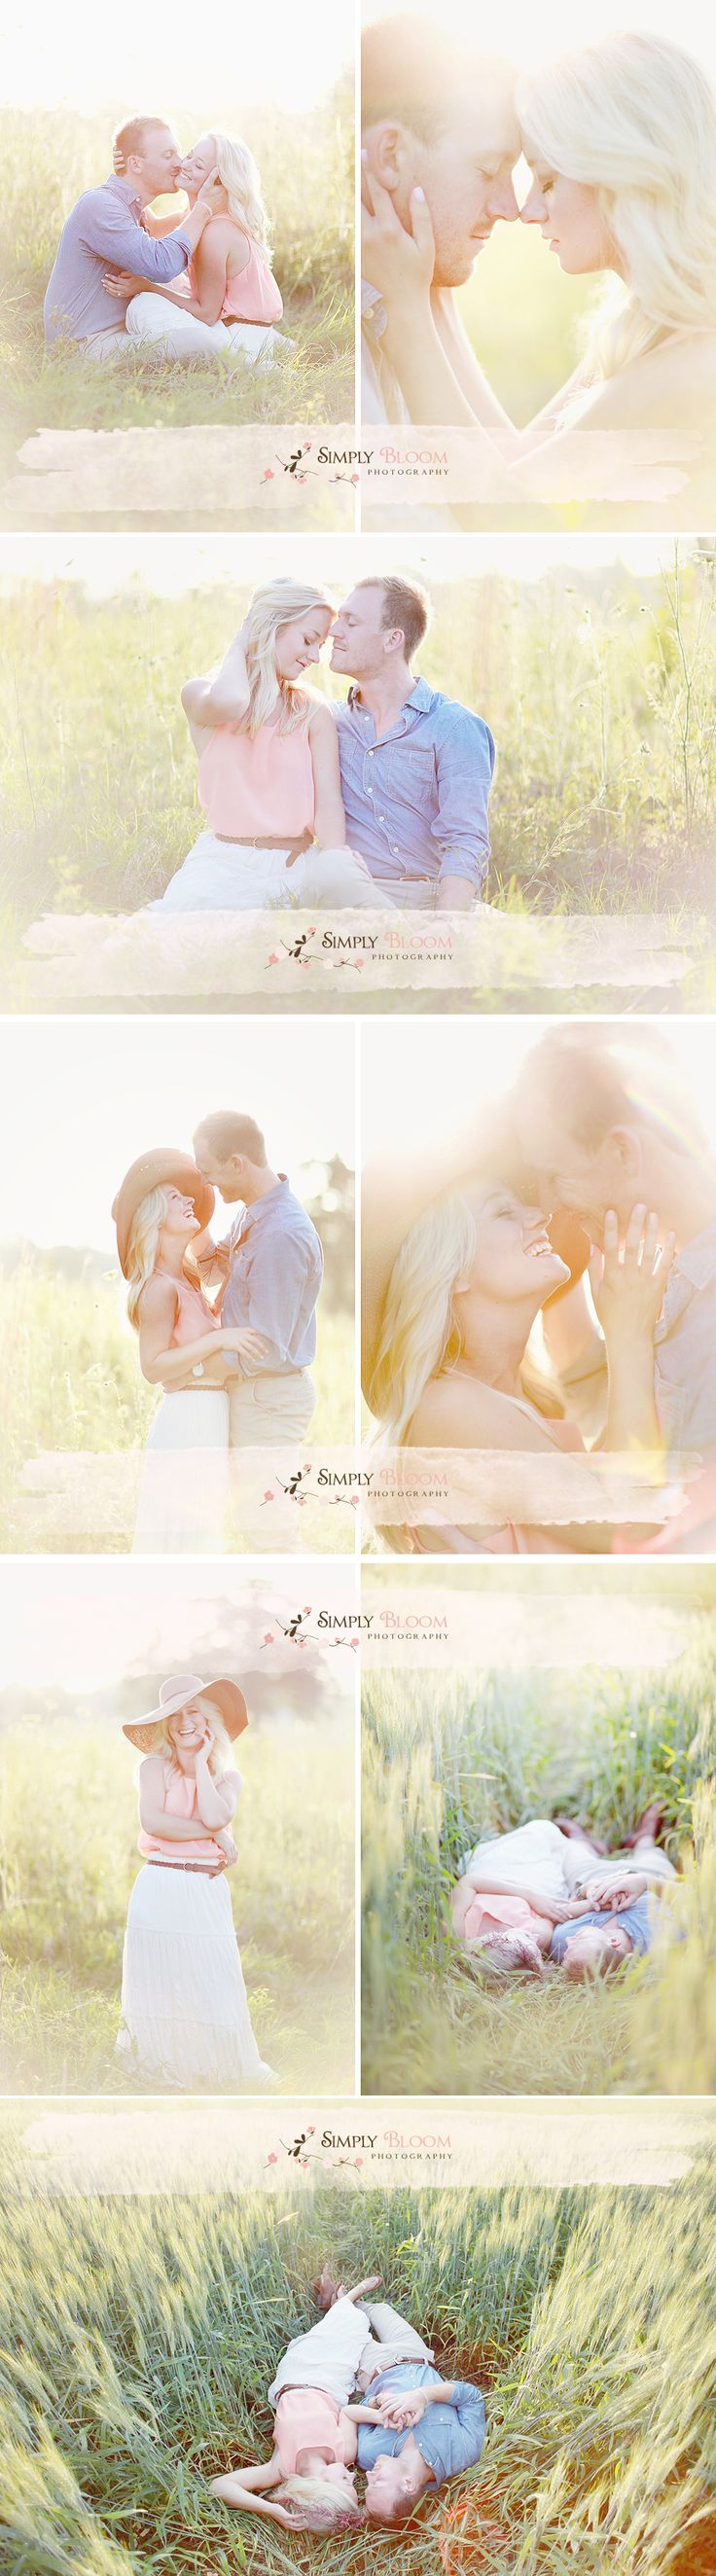 southern engagement photography, alabama engagement photography, huntsville alabama, vintage engagement photography, timeless wedding photography, simply bloom photography, best engagement photography